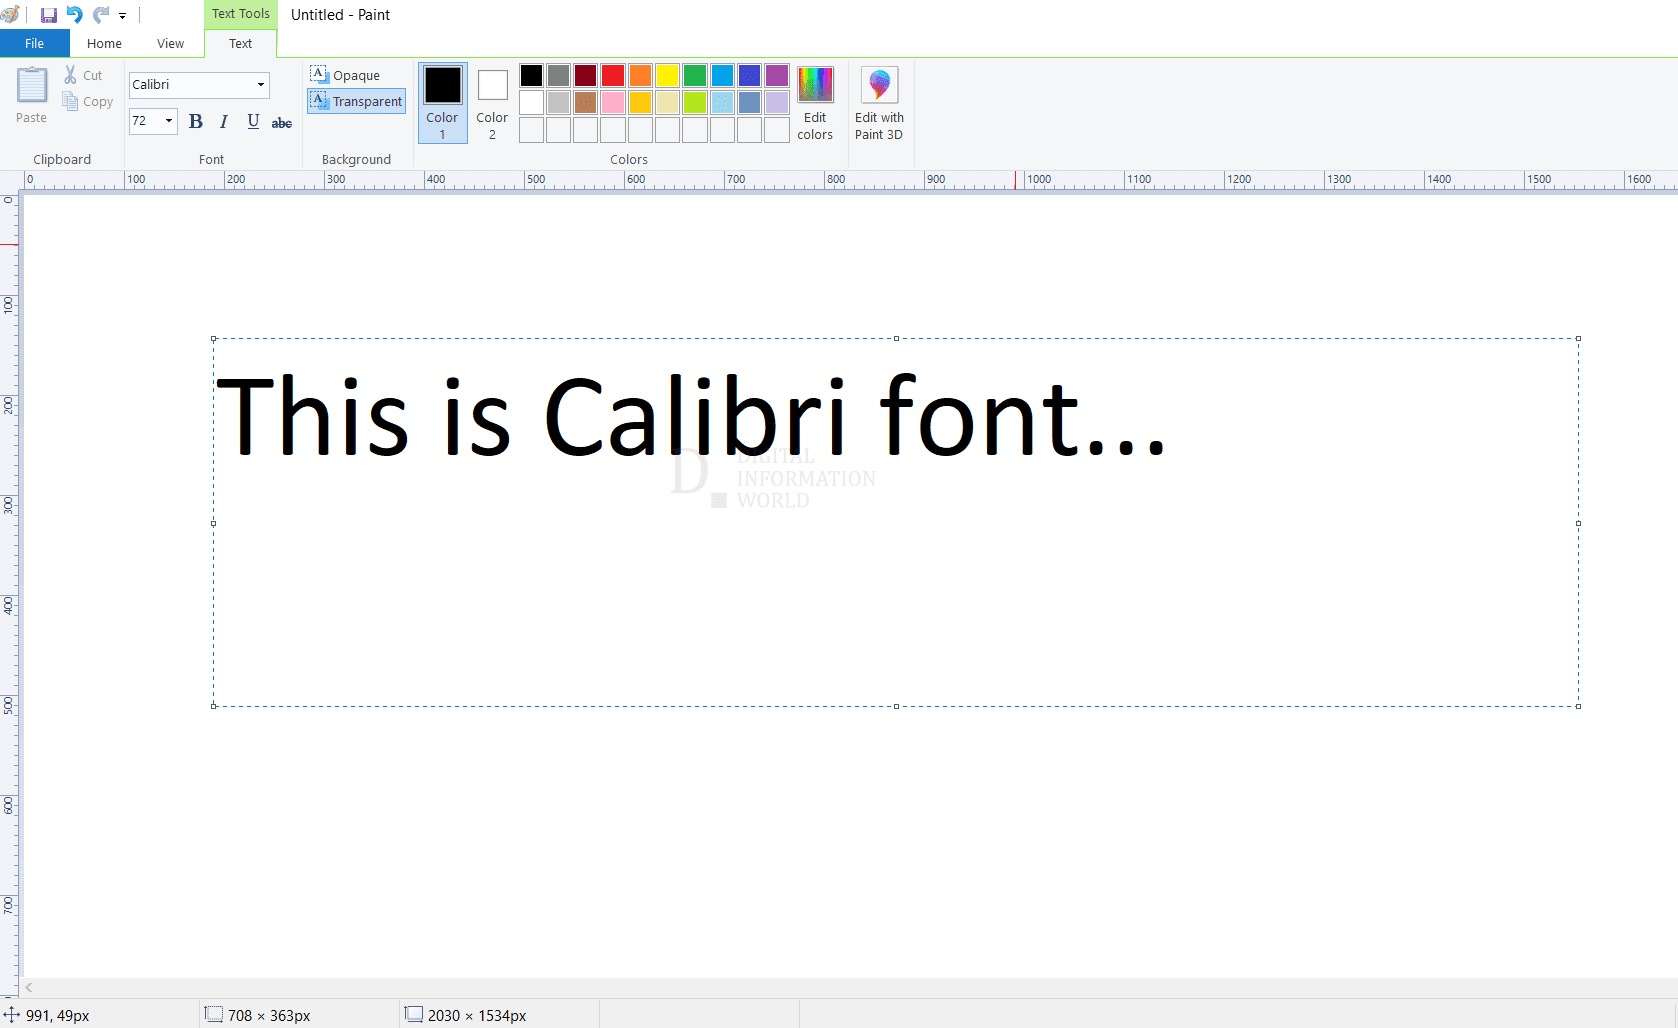 Microsoft Is Replacing Calibri As The Default Office Font, And Is Offering 5 Replacements In Its Stead